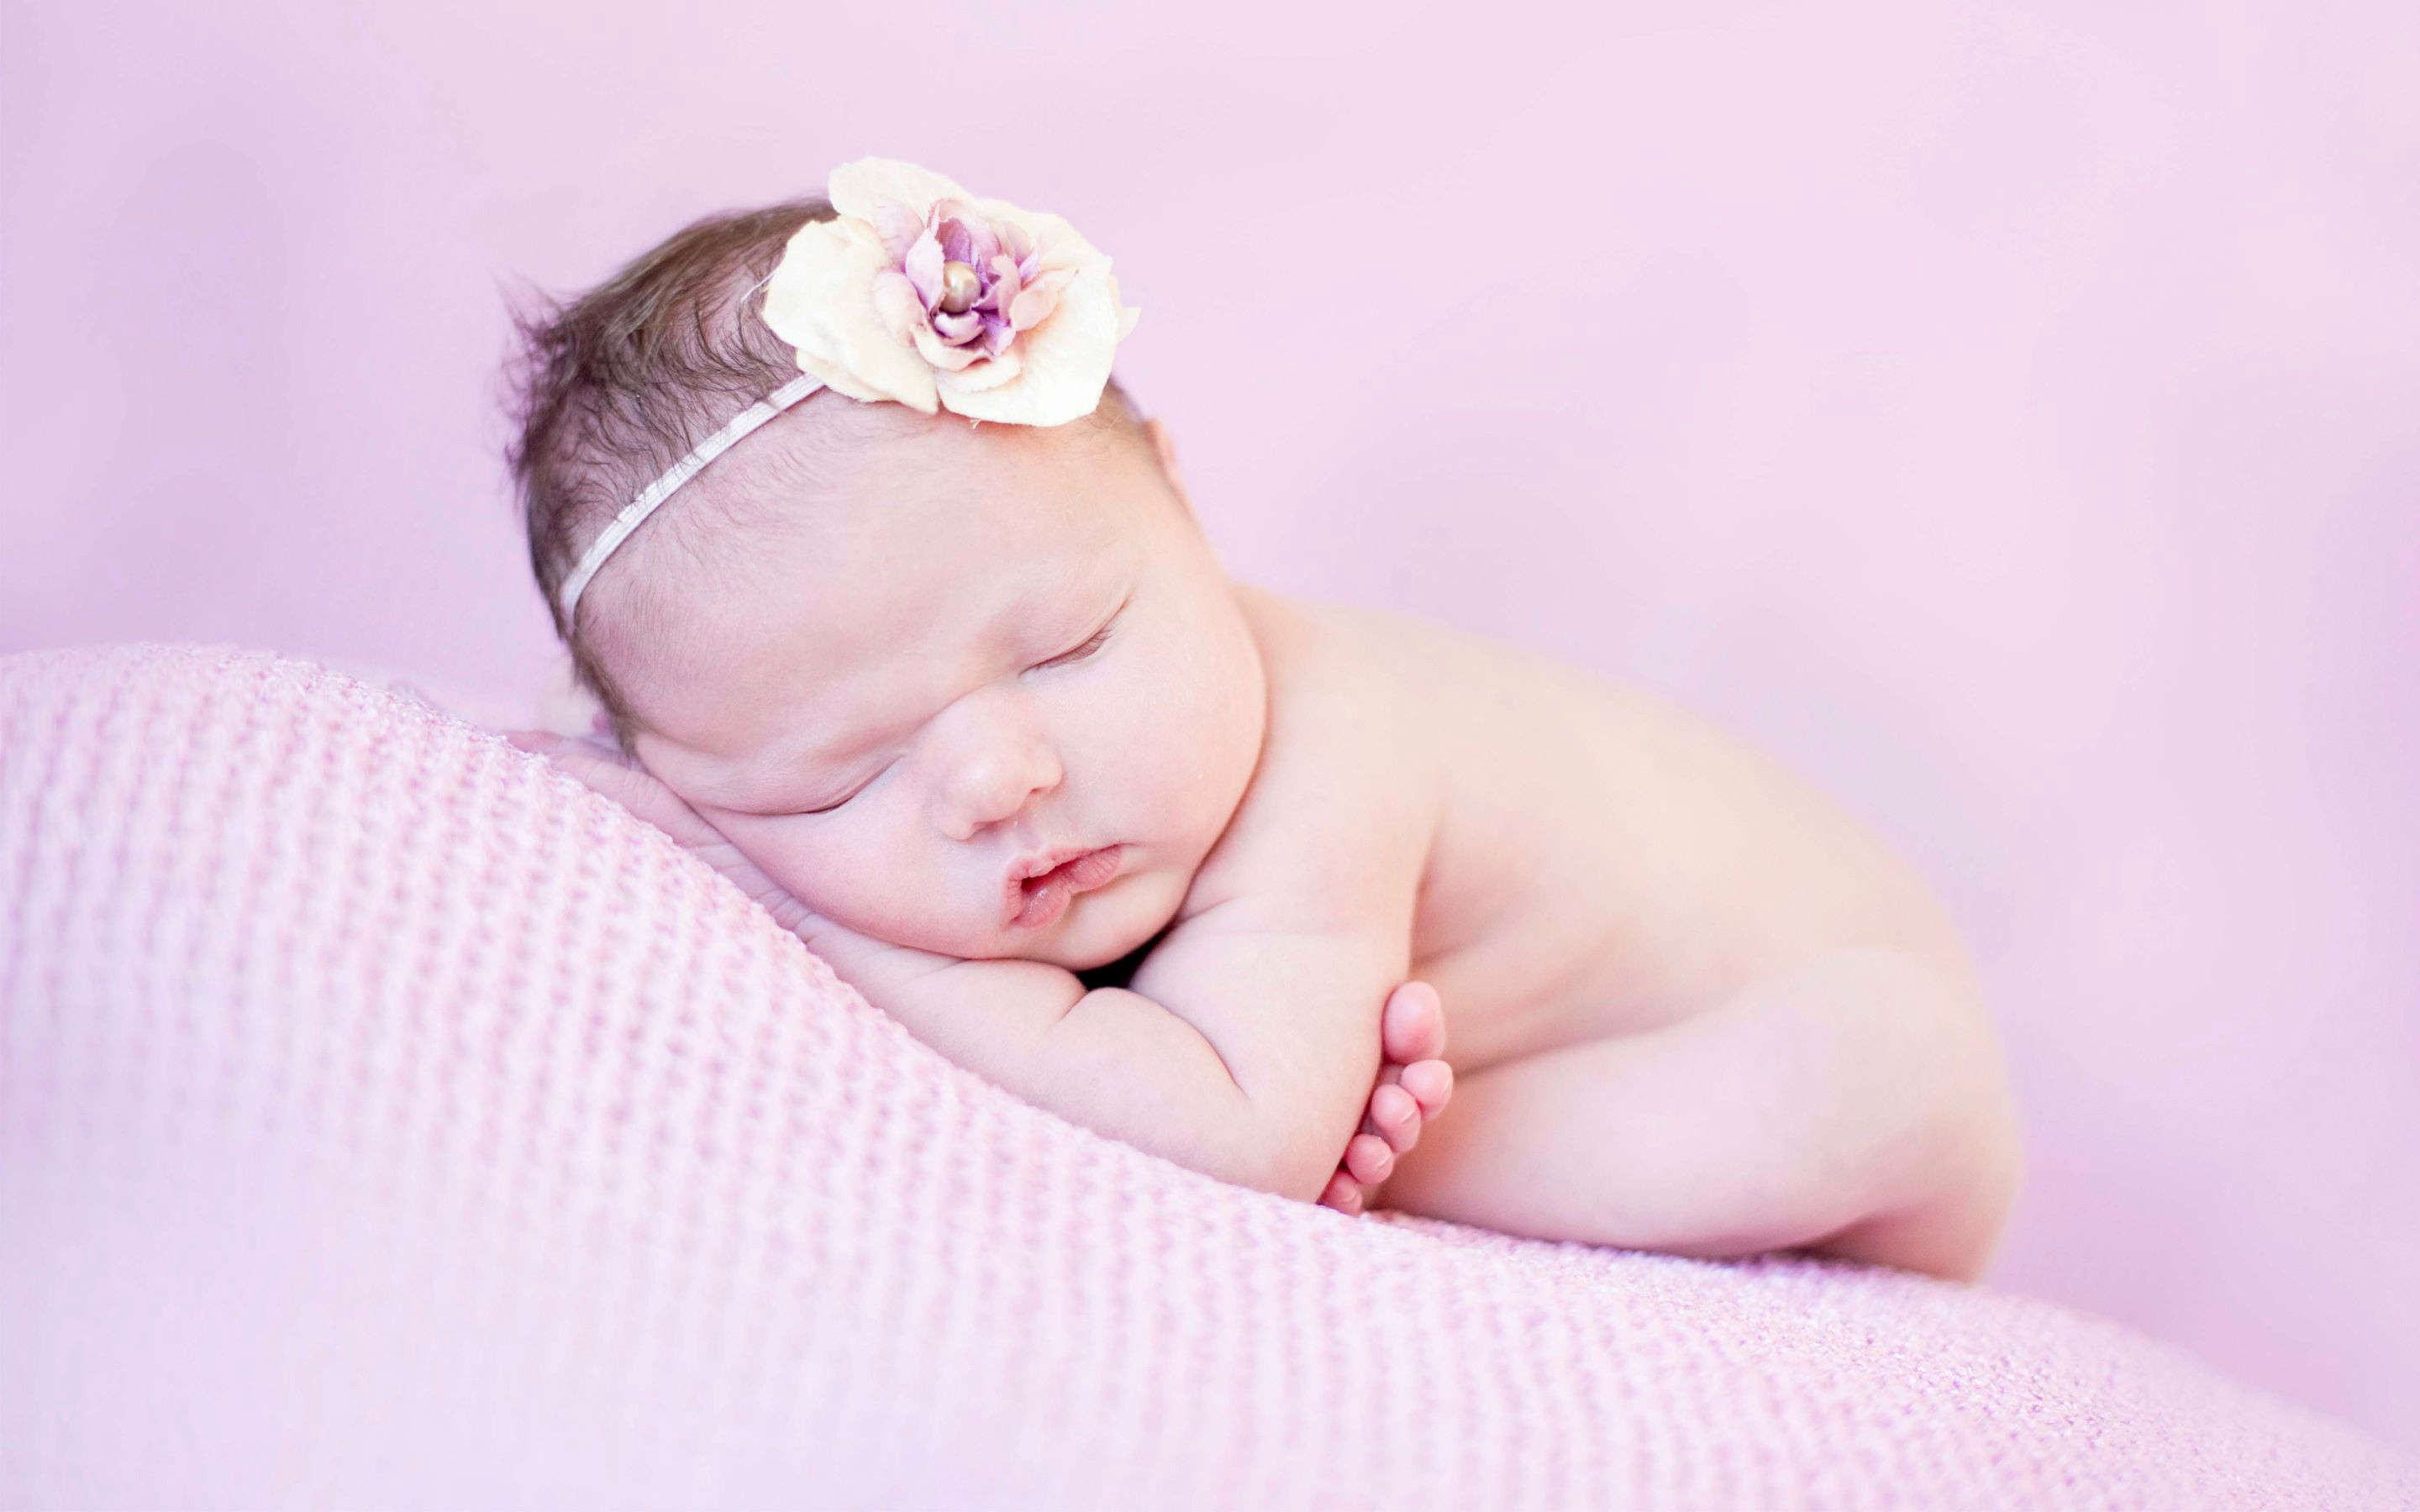 Res: 2880x1800, Baby Boy Wallpaper Luxury Cute Newborn Babies Wallpapers Wide with High  Resolution X Px 4 00